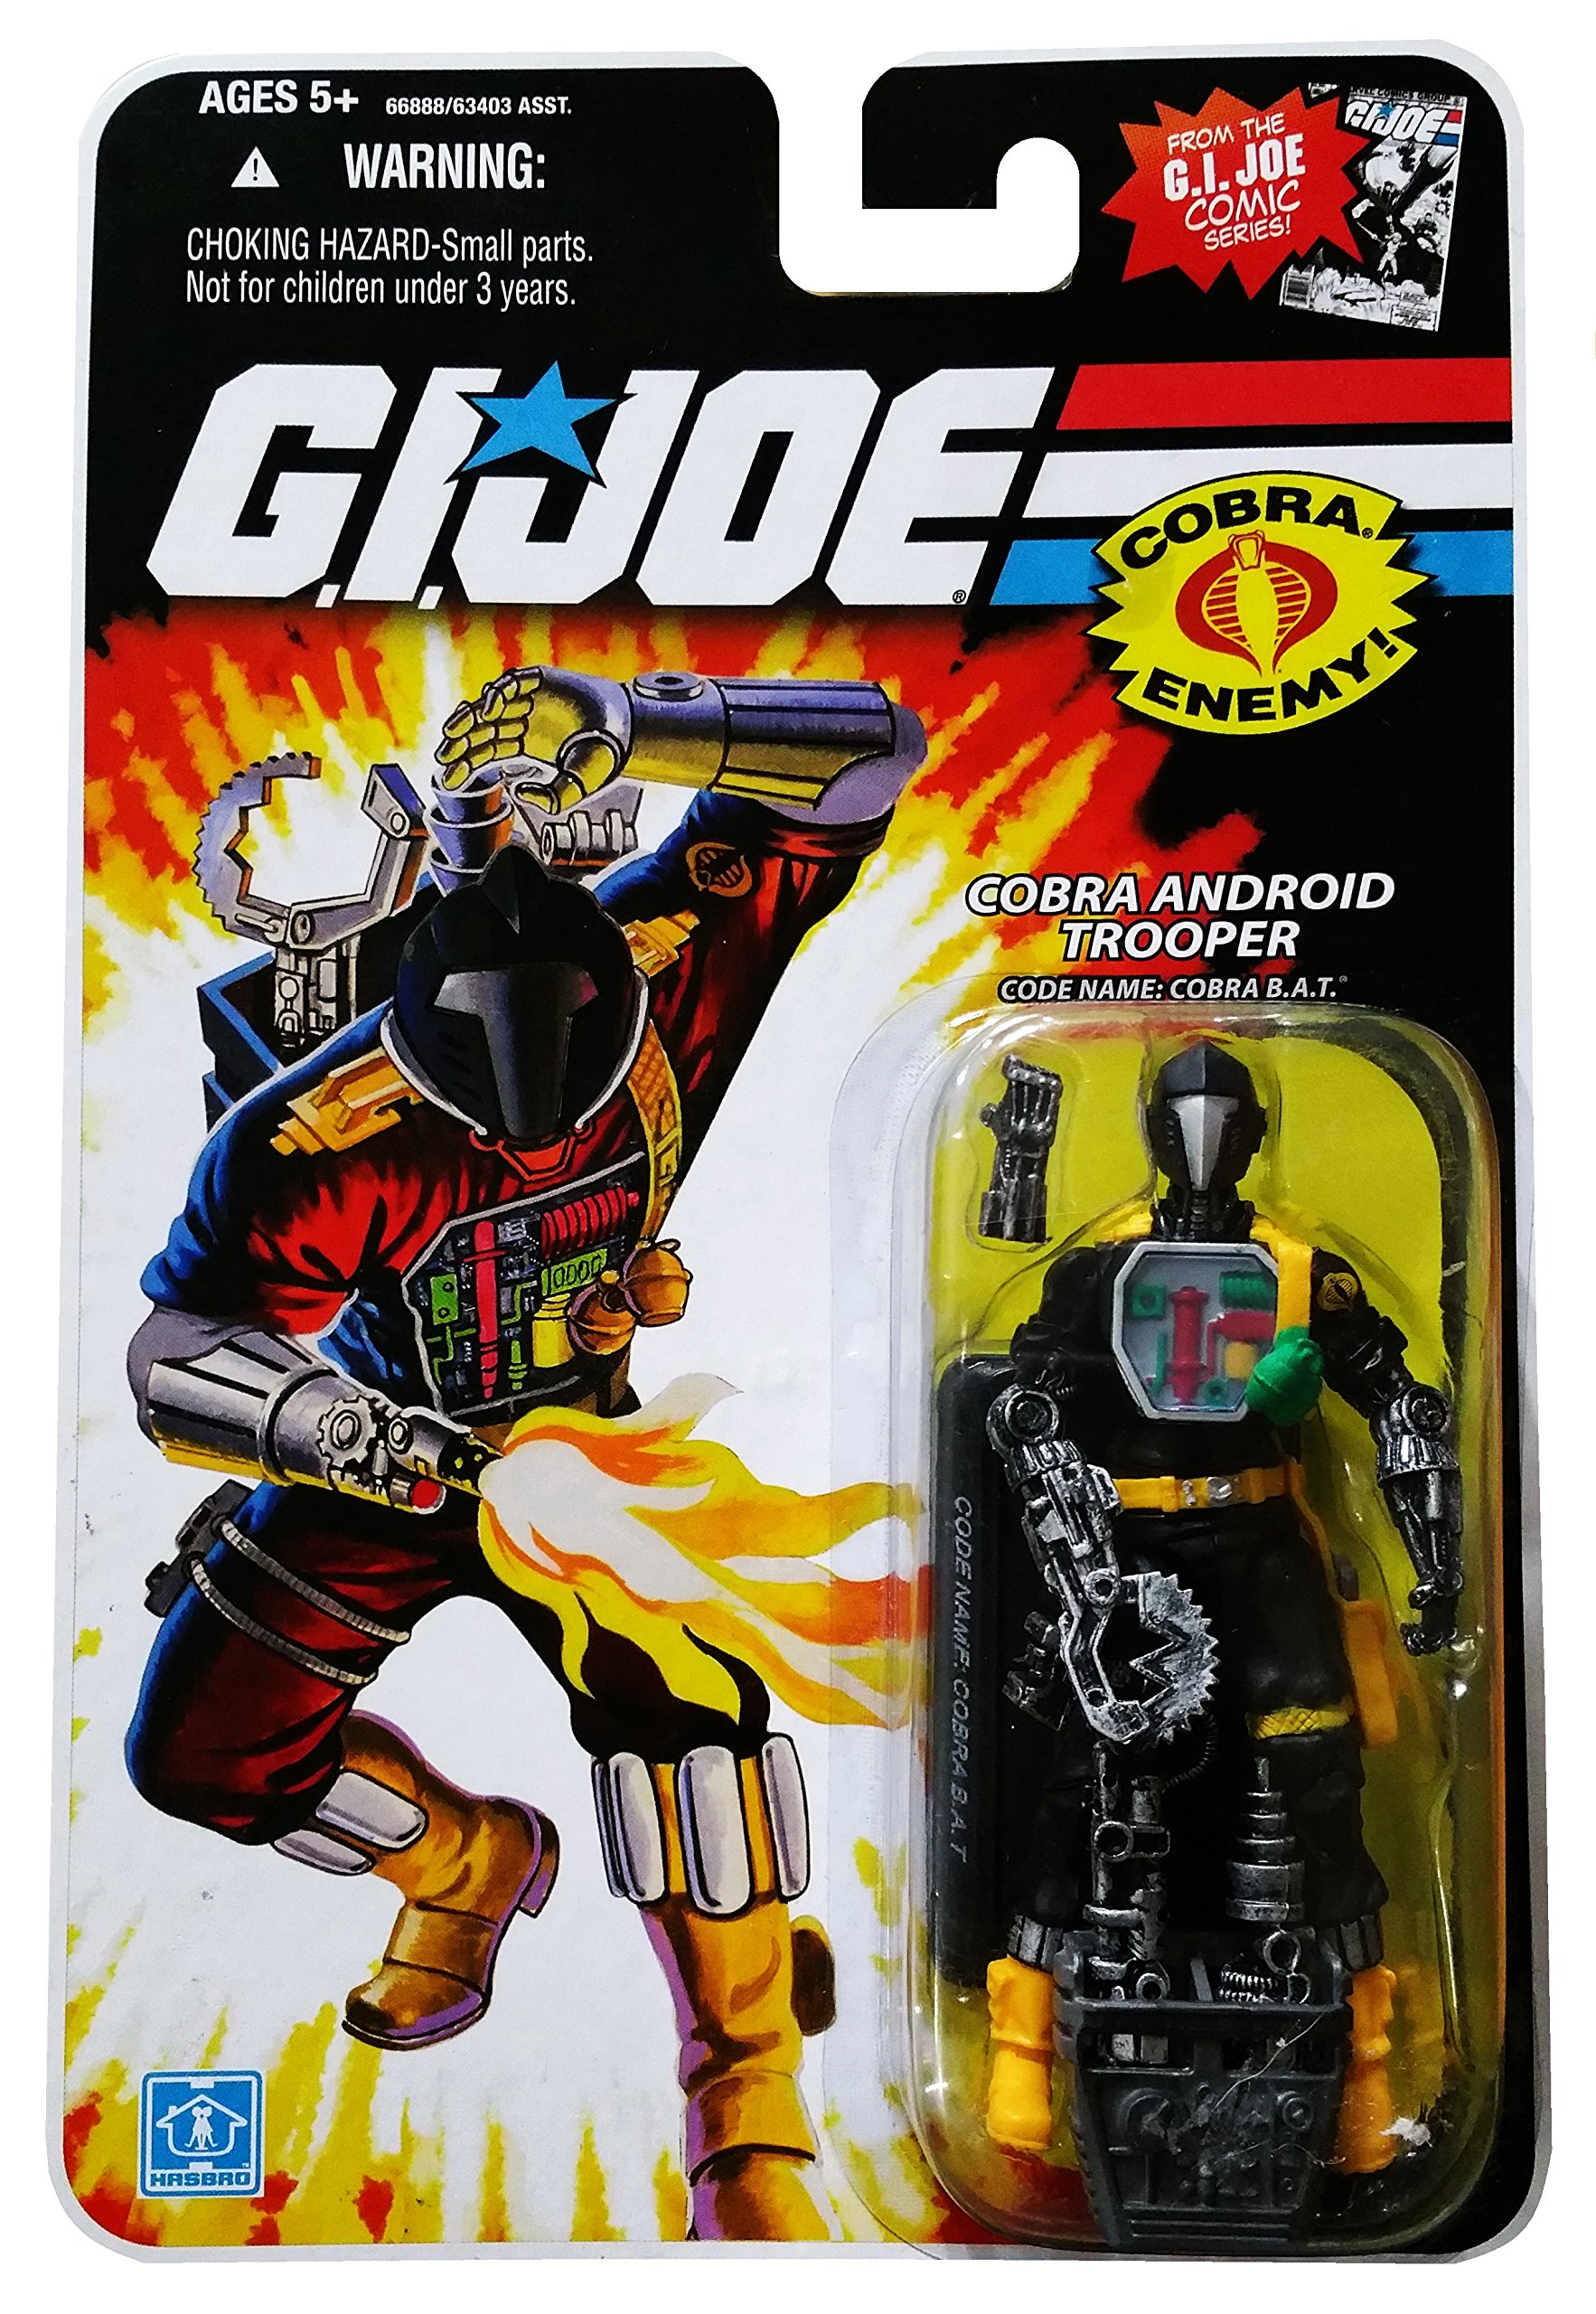 G.I. Joe 25th Anniversary Comic Series Cardback: Cobra B.A.T. (Battle Android Trooper) 3.75 Inch Action Figure